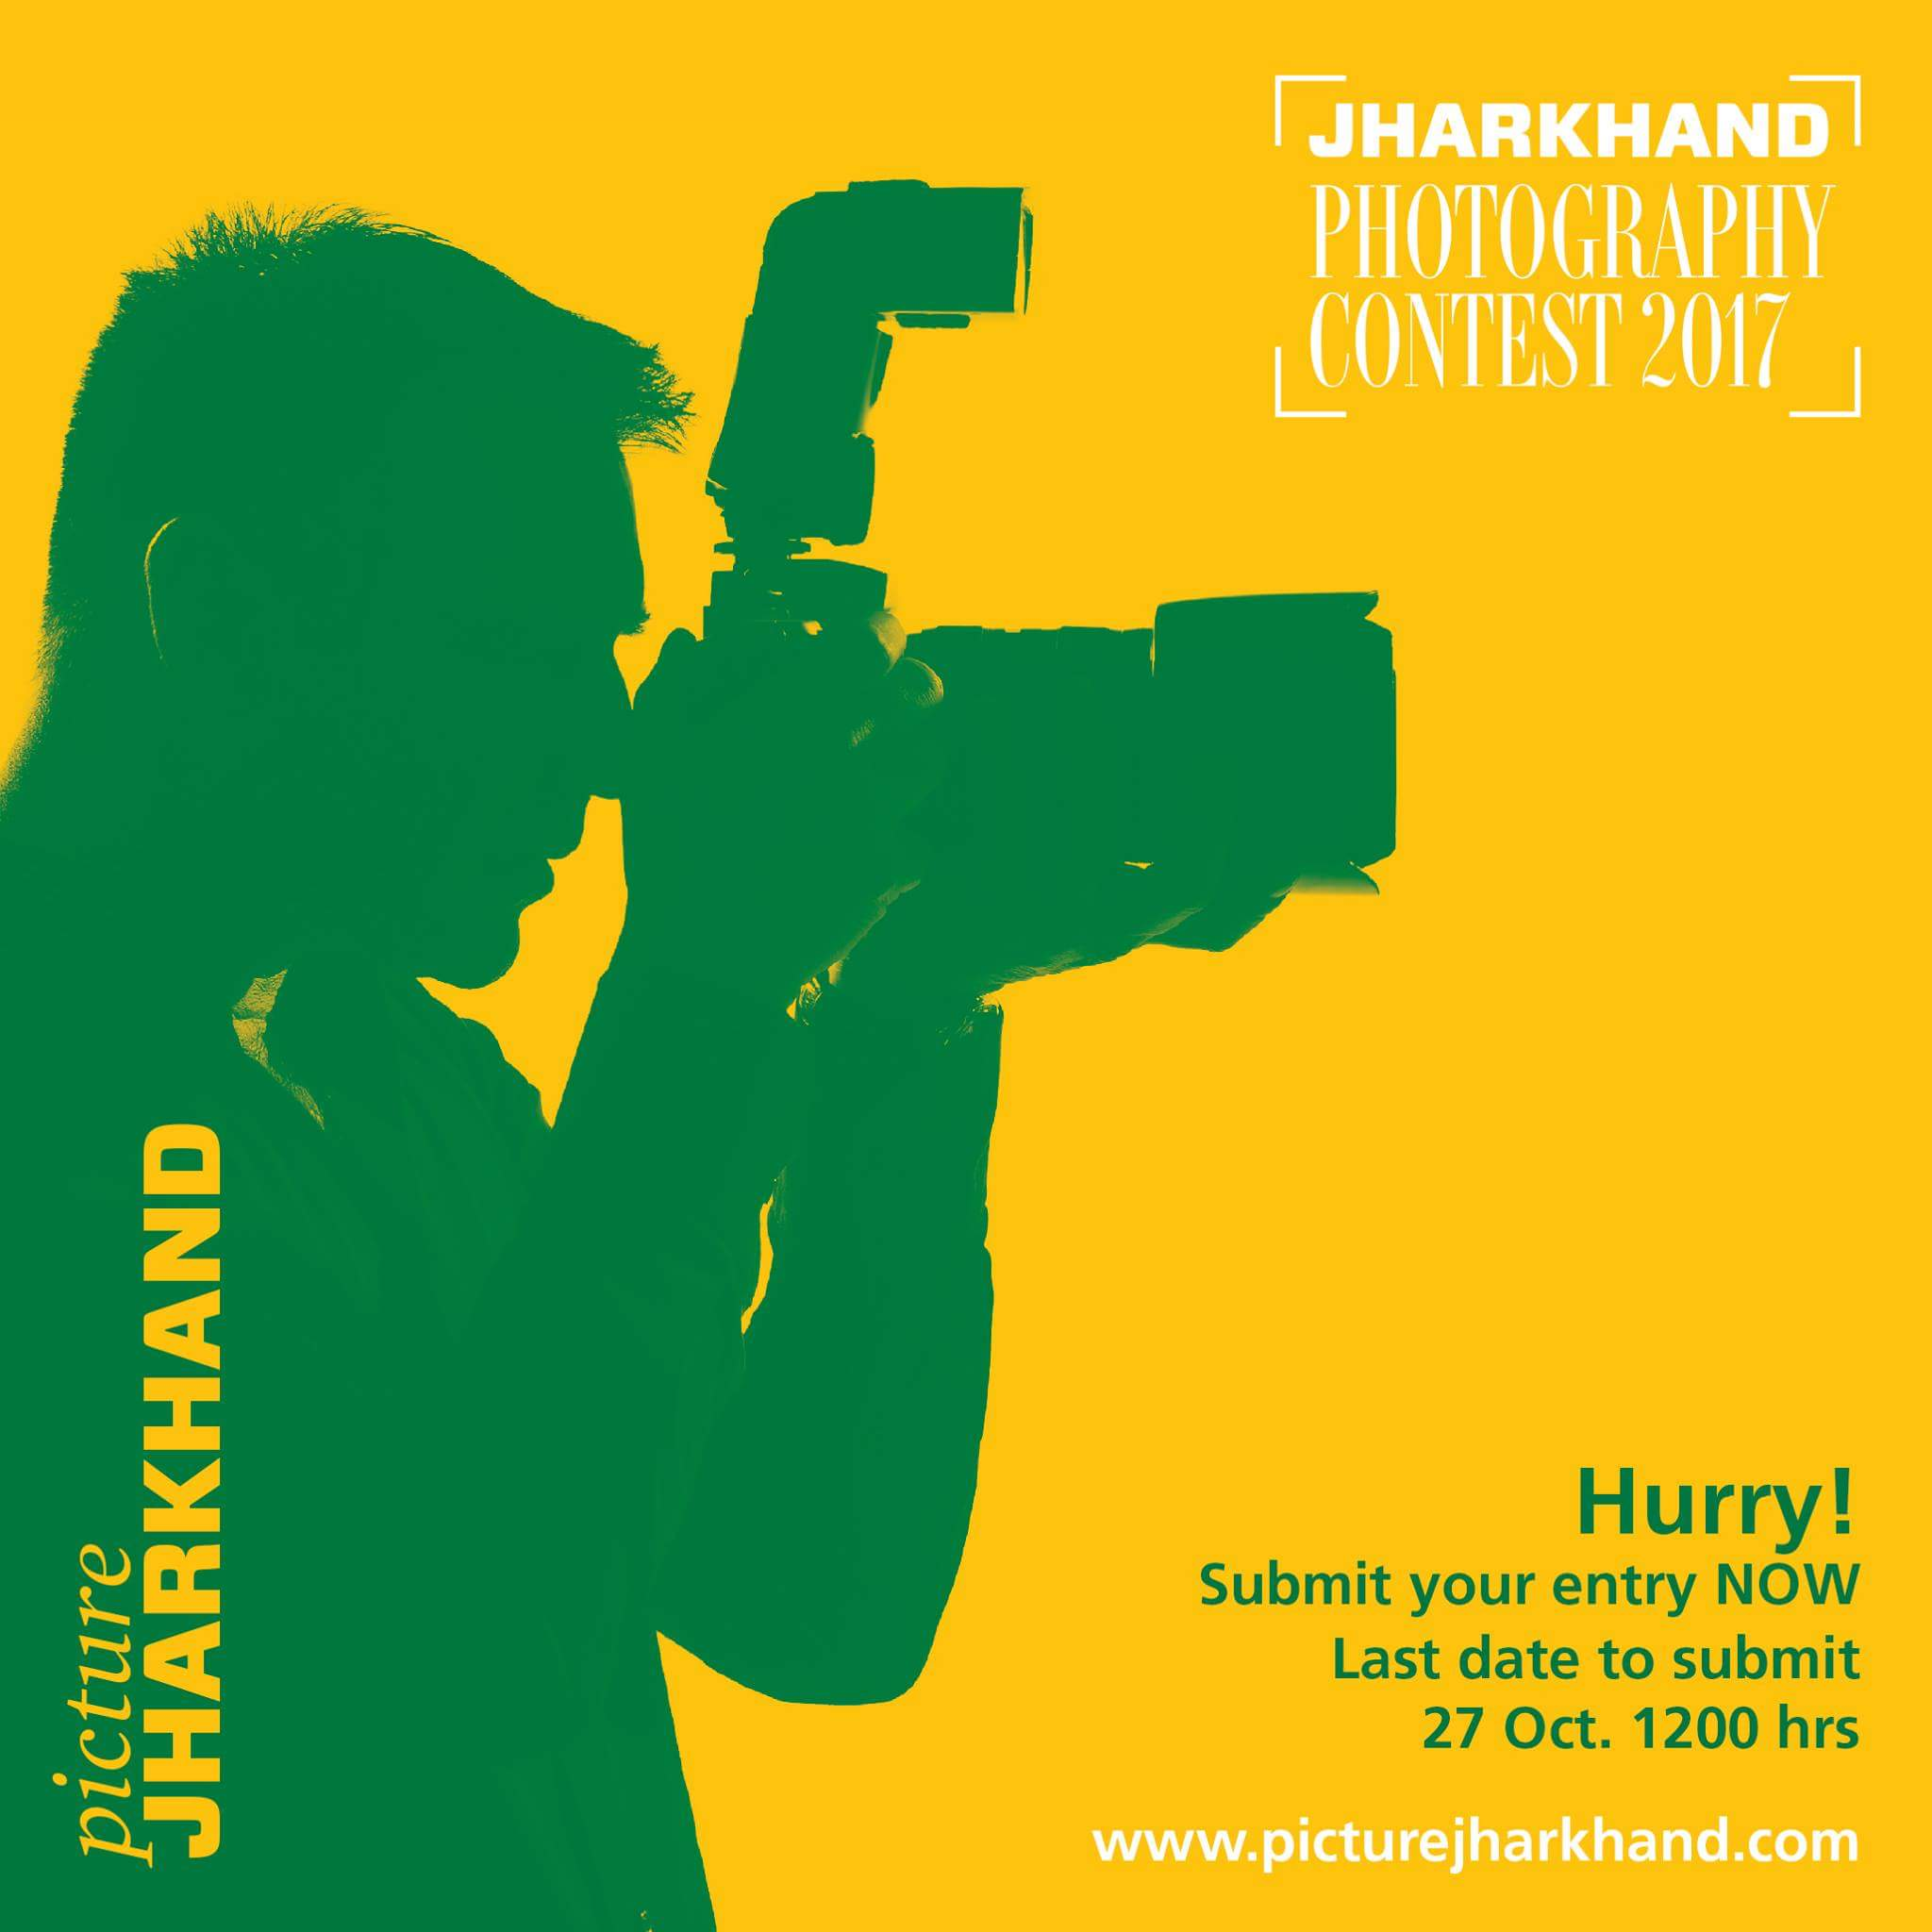 Picture Jharkhand contest :: Deadline for submission extended to 27 oct : Grand Prize announced